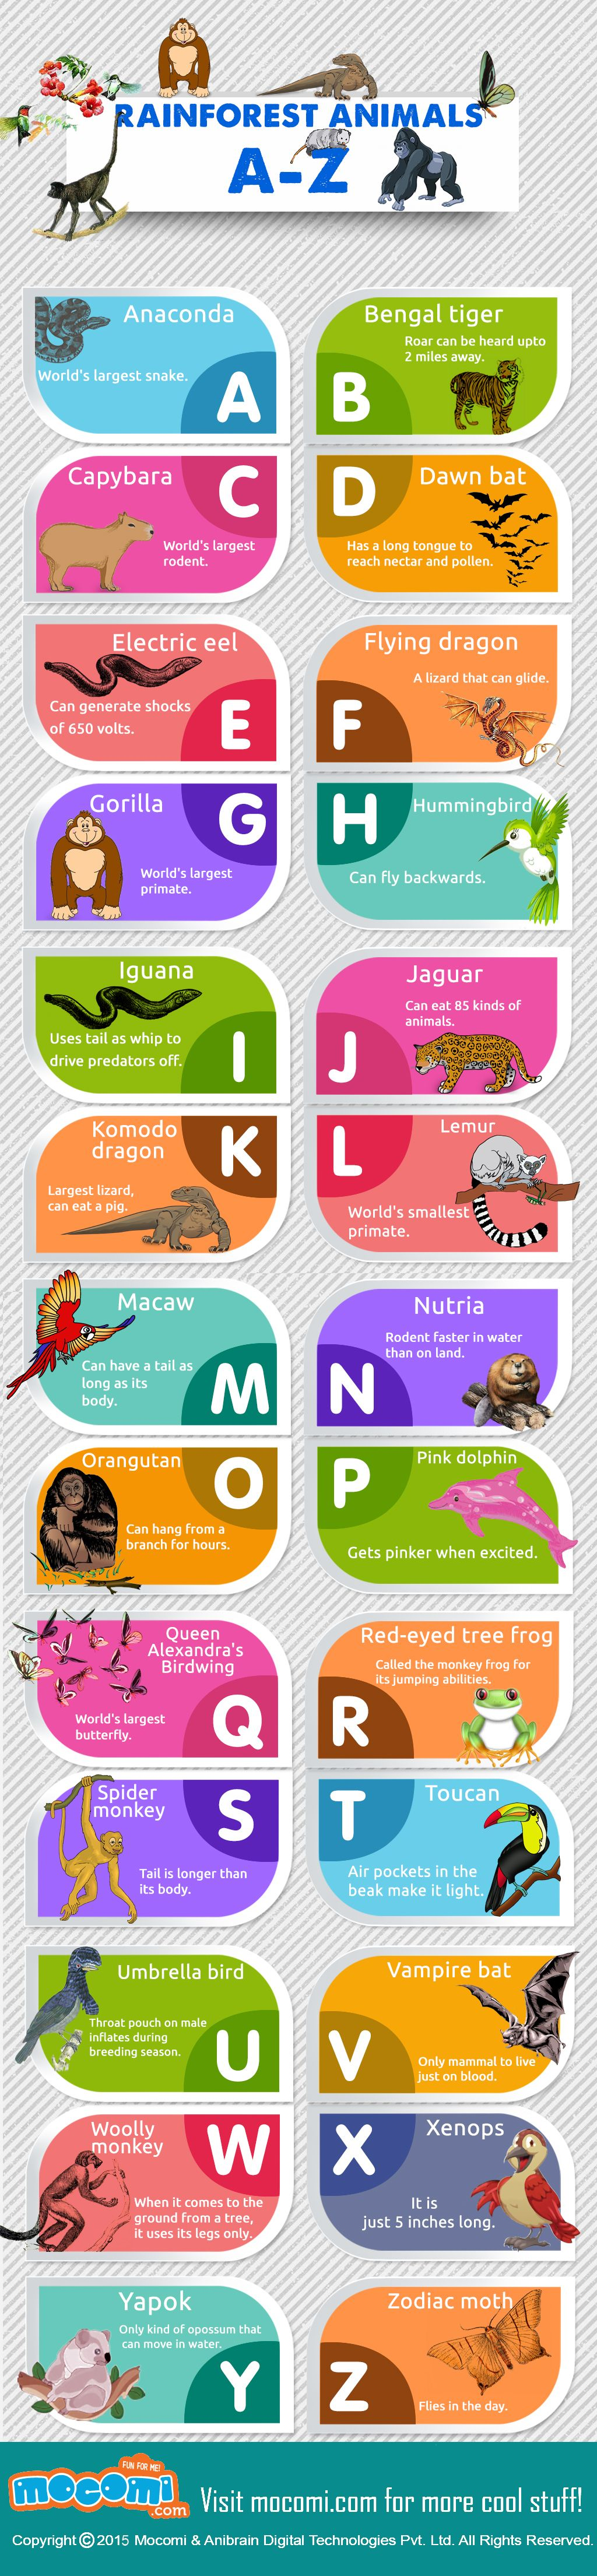 List of Rainforest Animals Rainforests are located